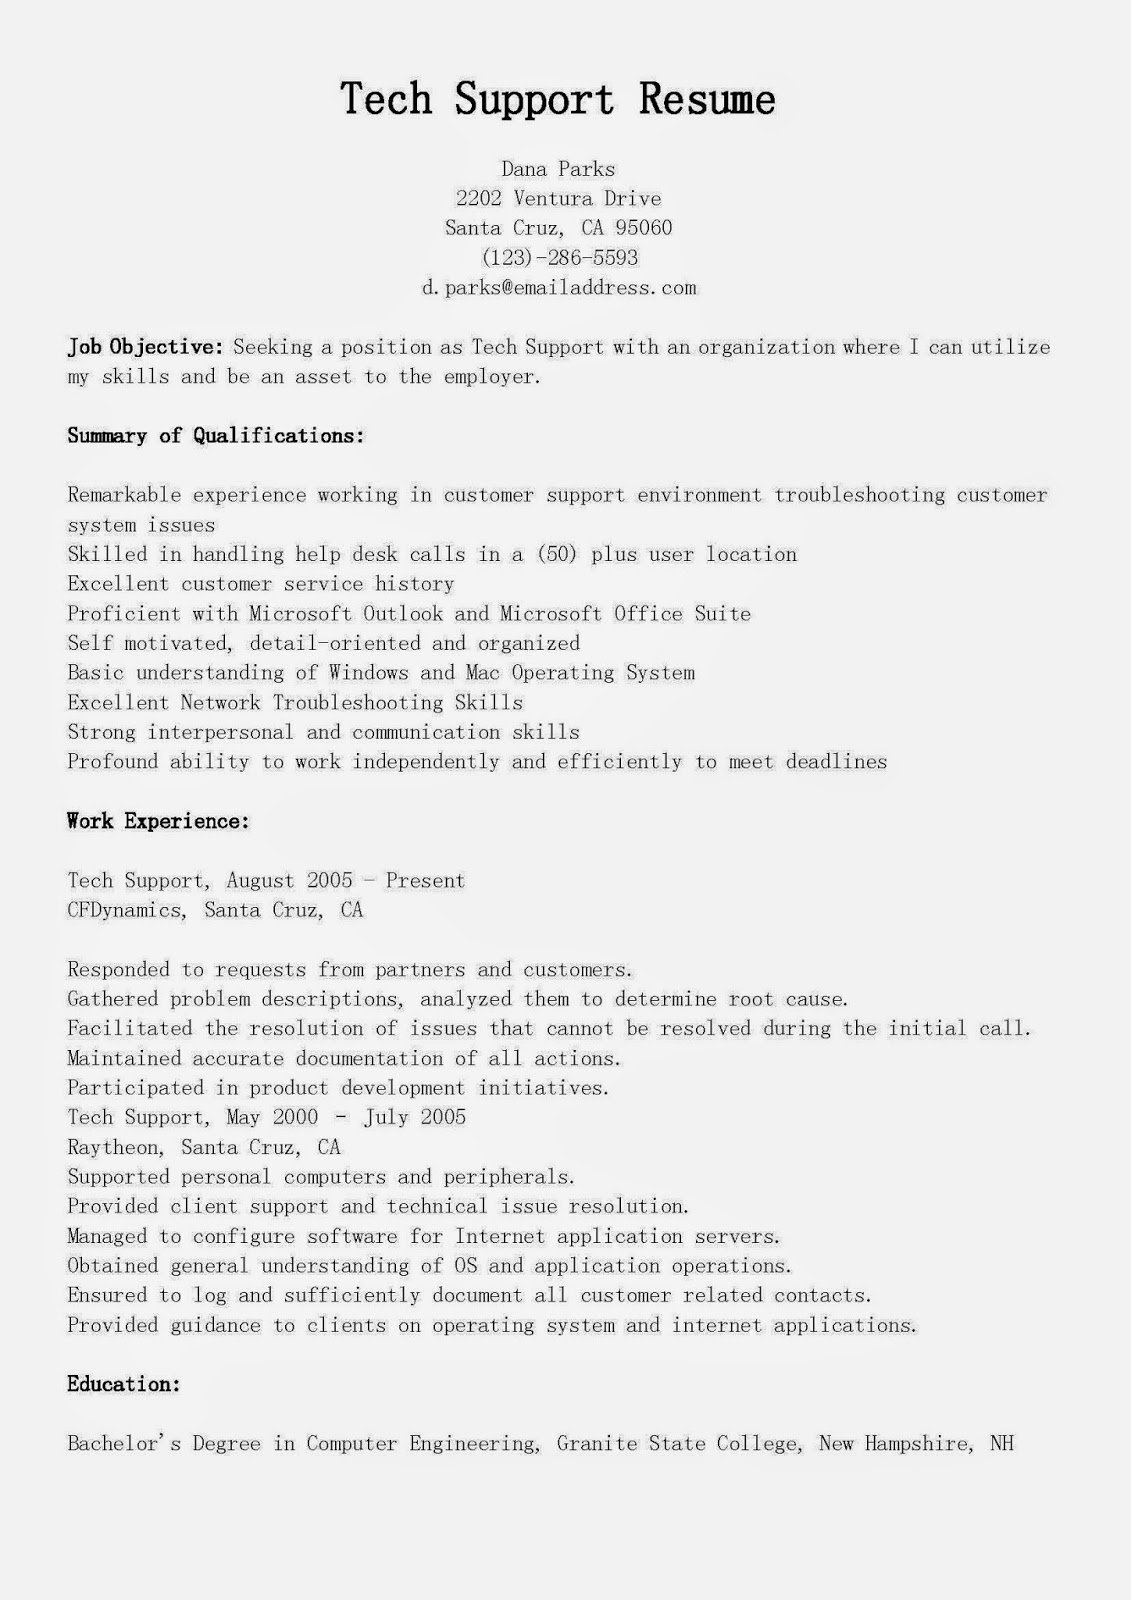 Resume Samples Tech Support Resume Sample